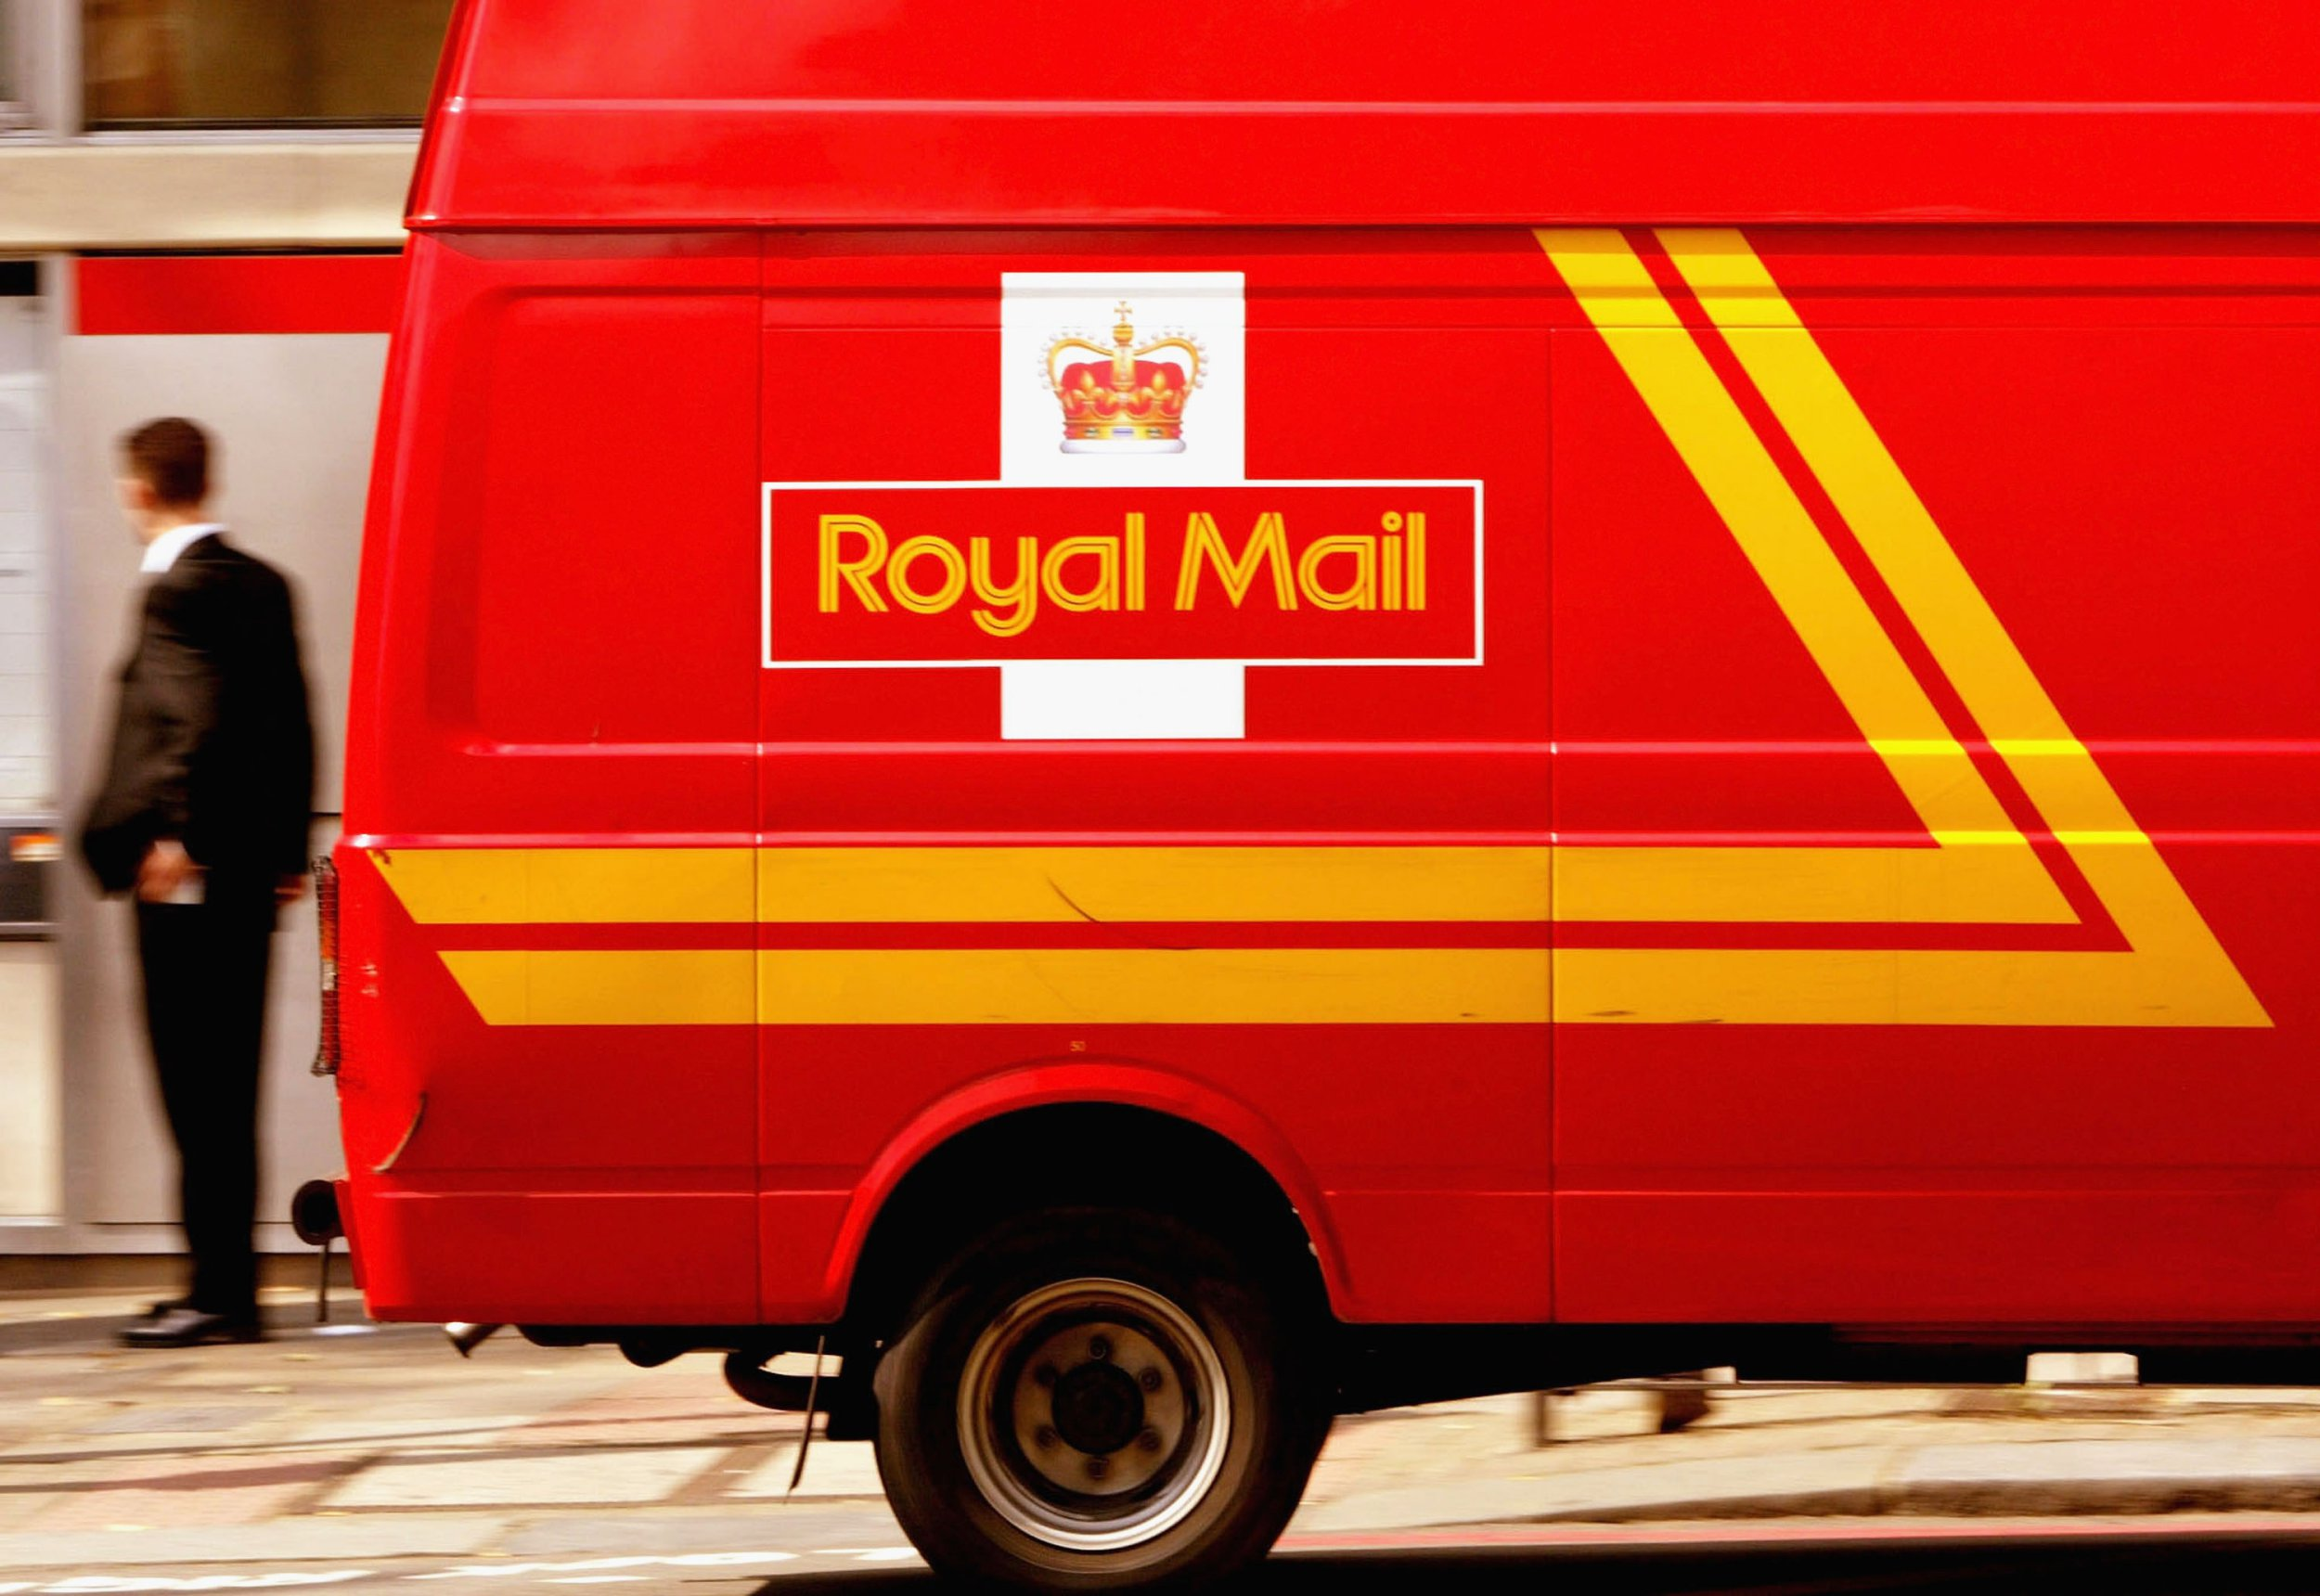 When is Royal Mail back to its normal service?